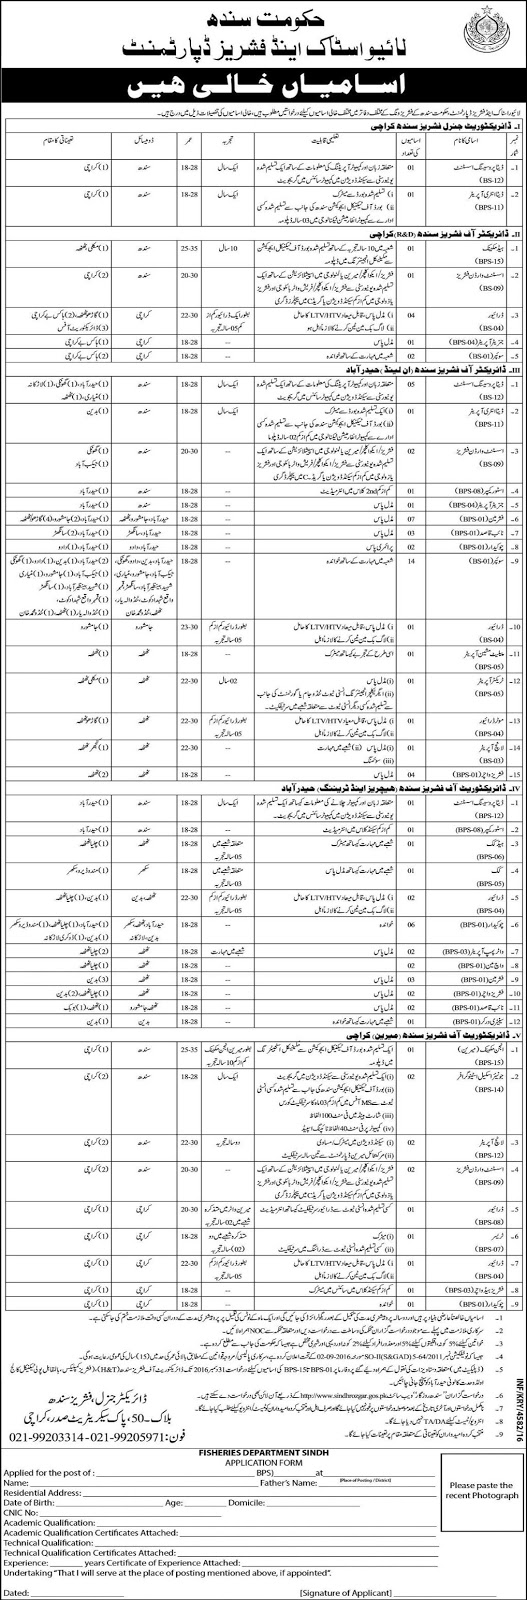 Govt of Sindh Livestock and Fisheries Department Jobs